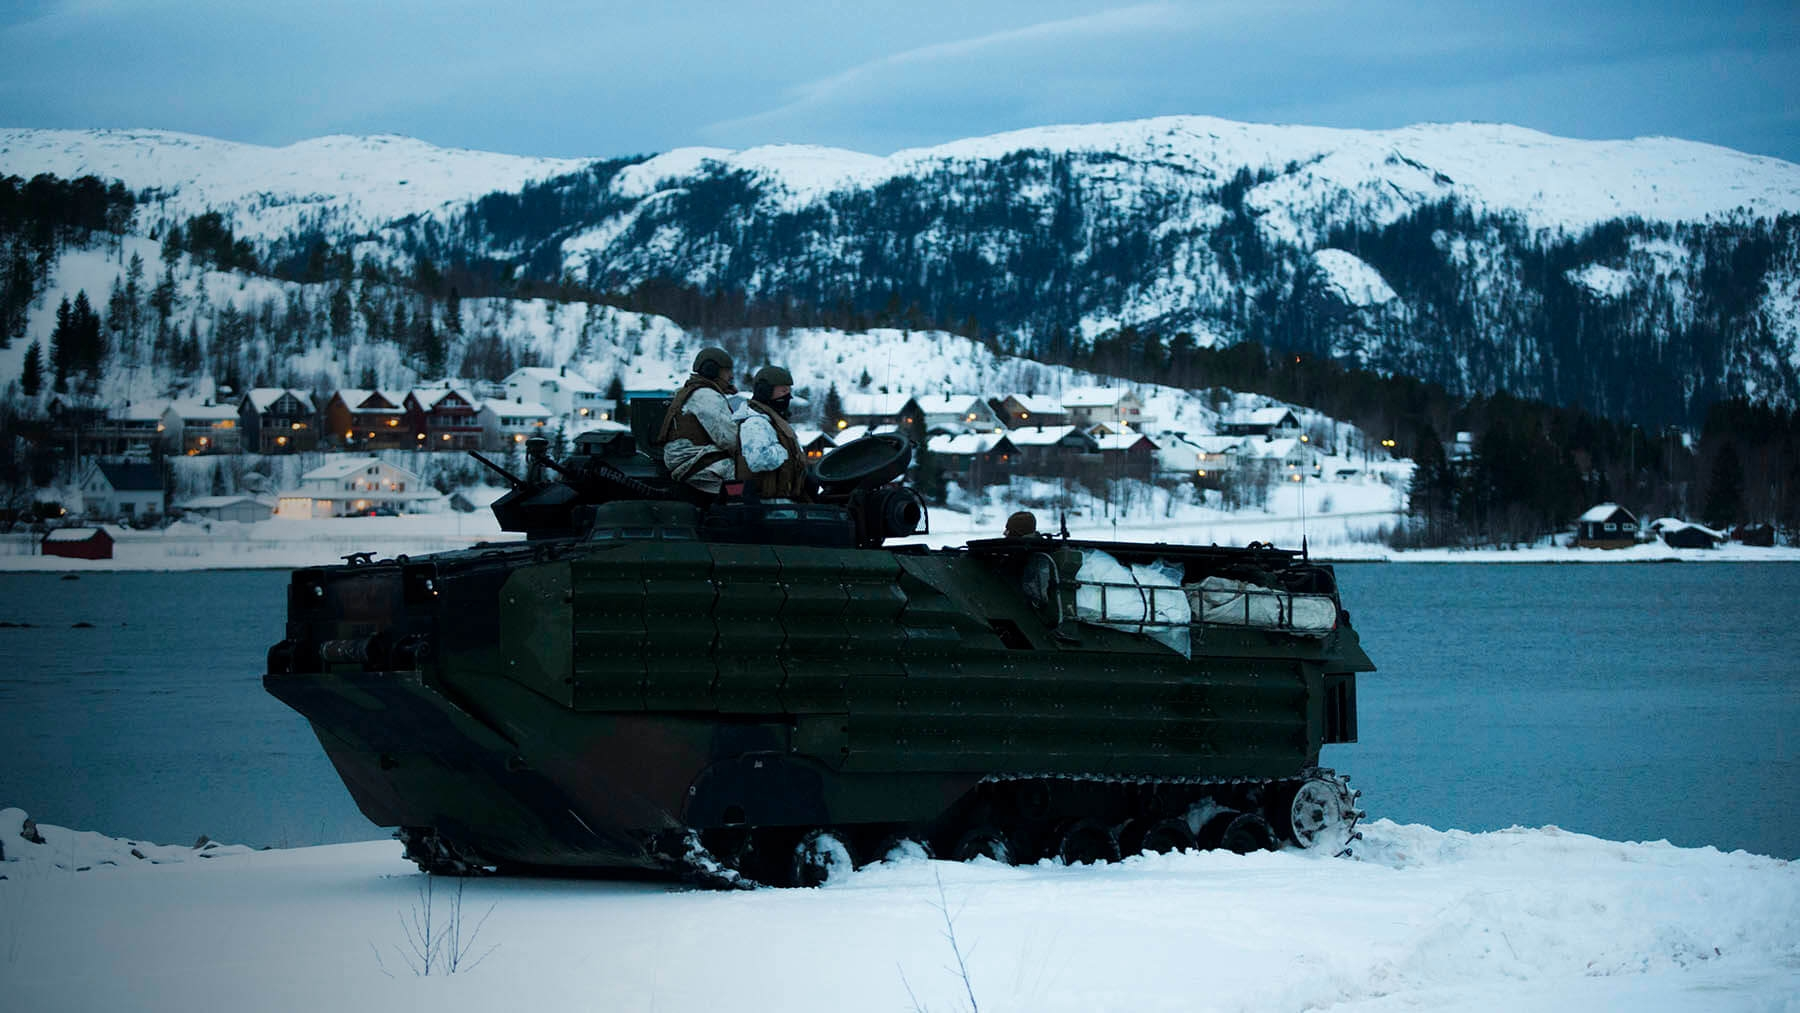 Marines patrol a lake with snow-covered homes and mountains in the background.